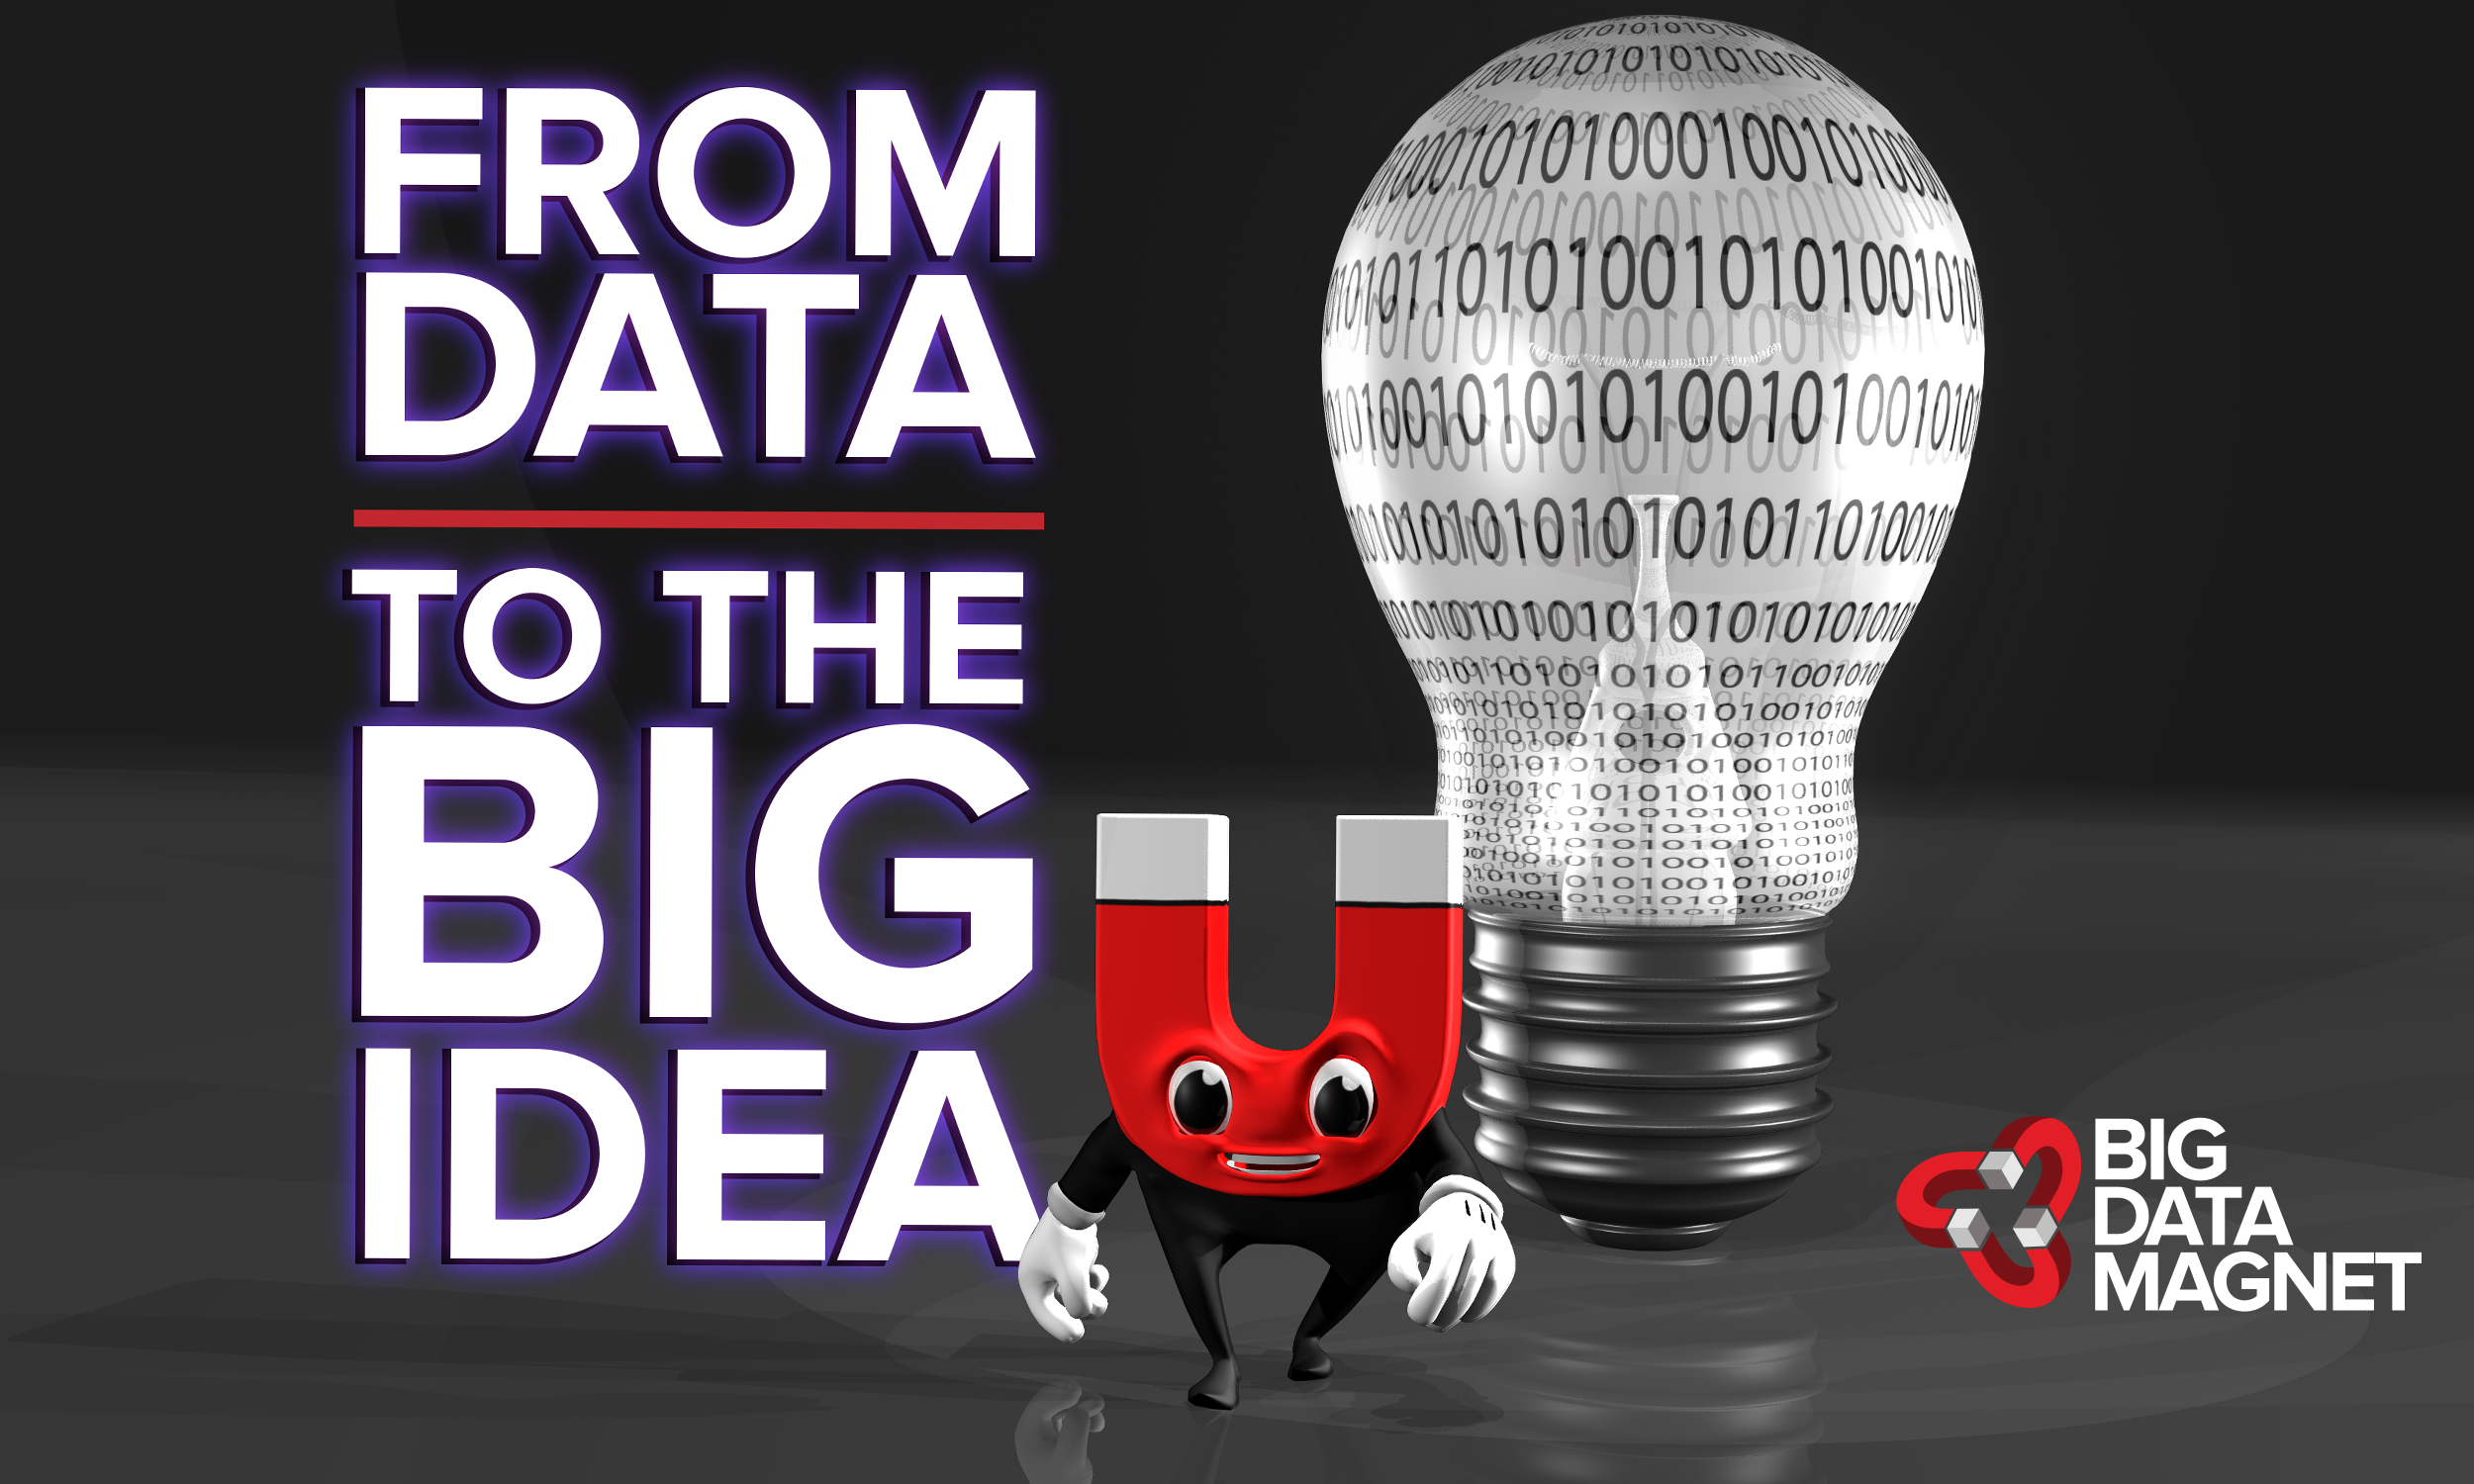 Big-Data-Magnet-From-data-to-the-big-idea-Peter-Matiss